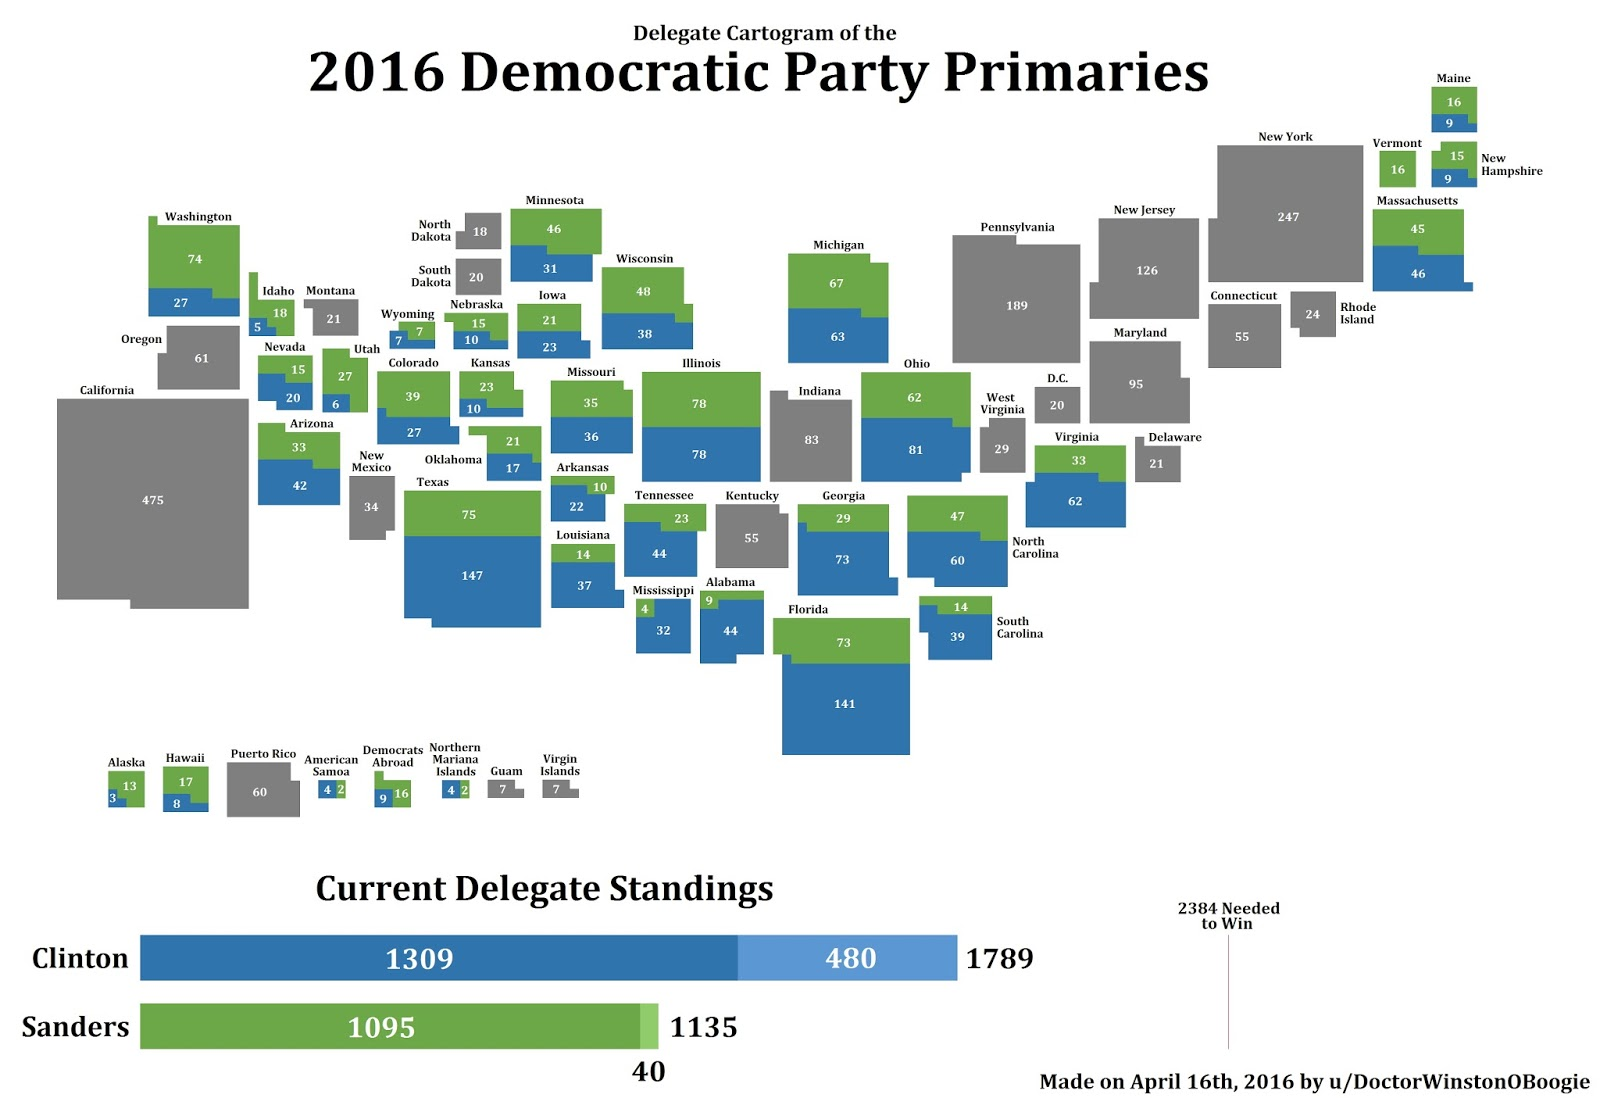 Delegate cartogram of the 2016 Democratic party primaries